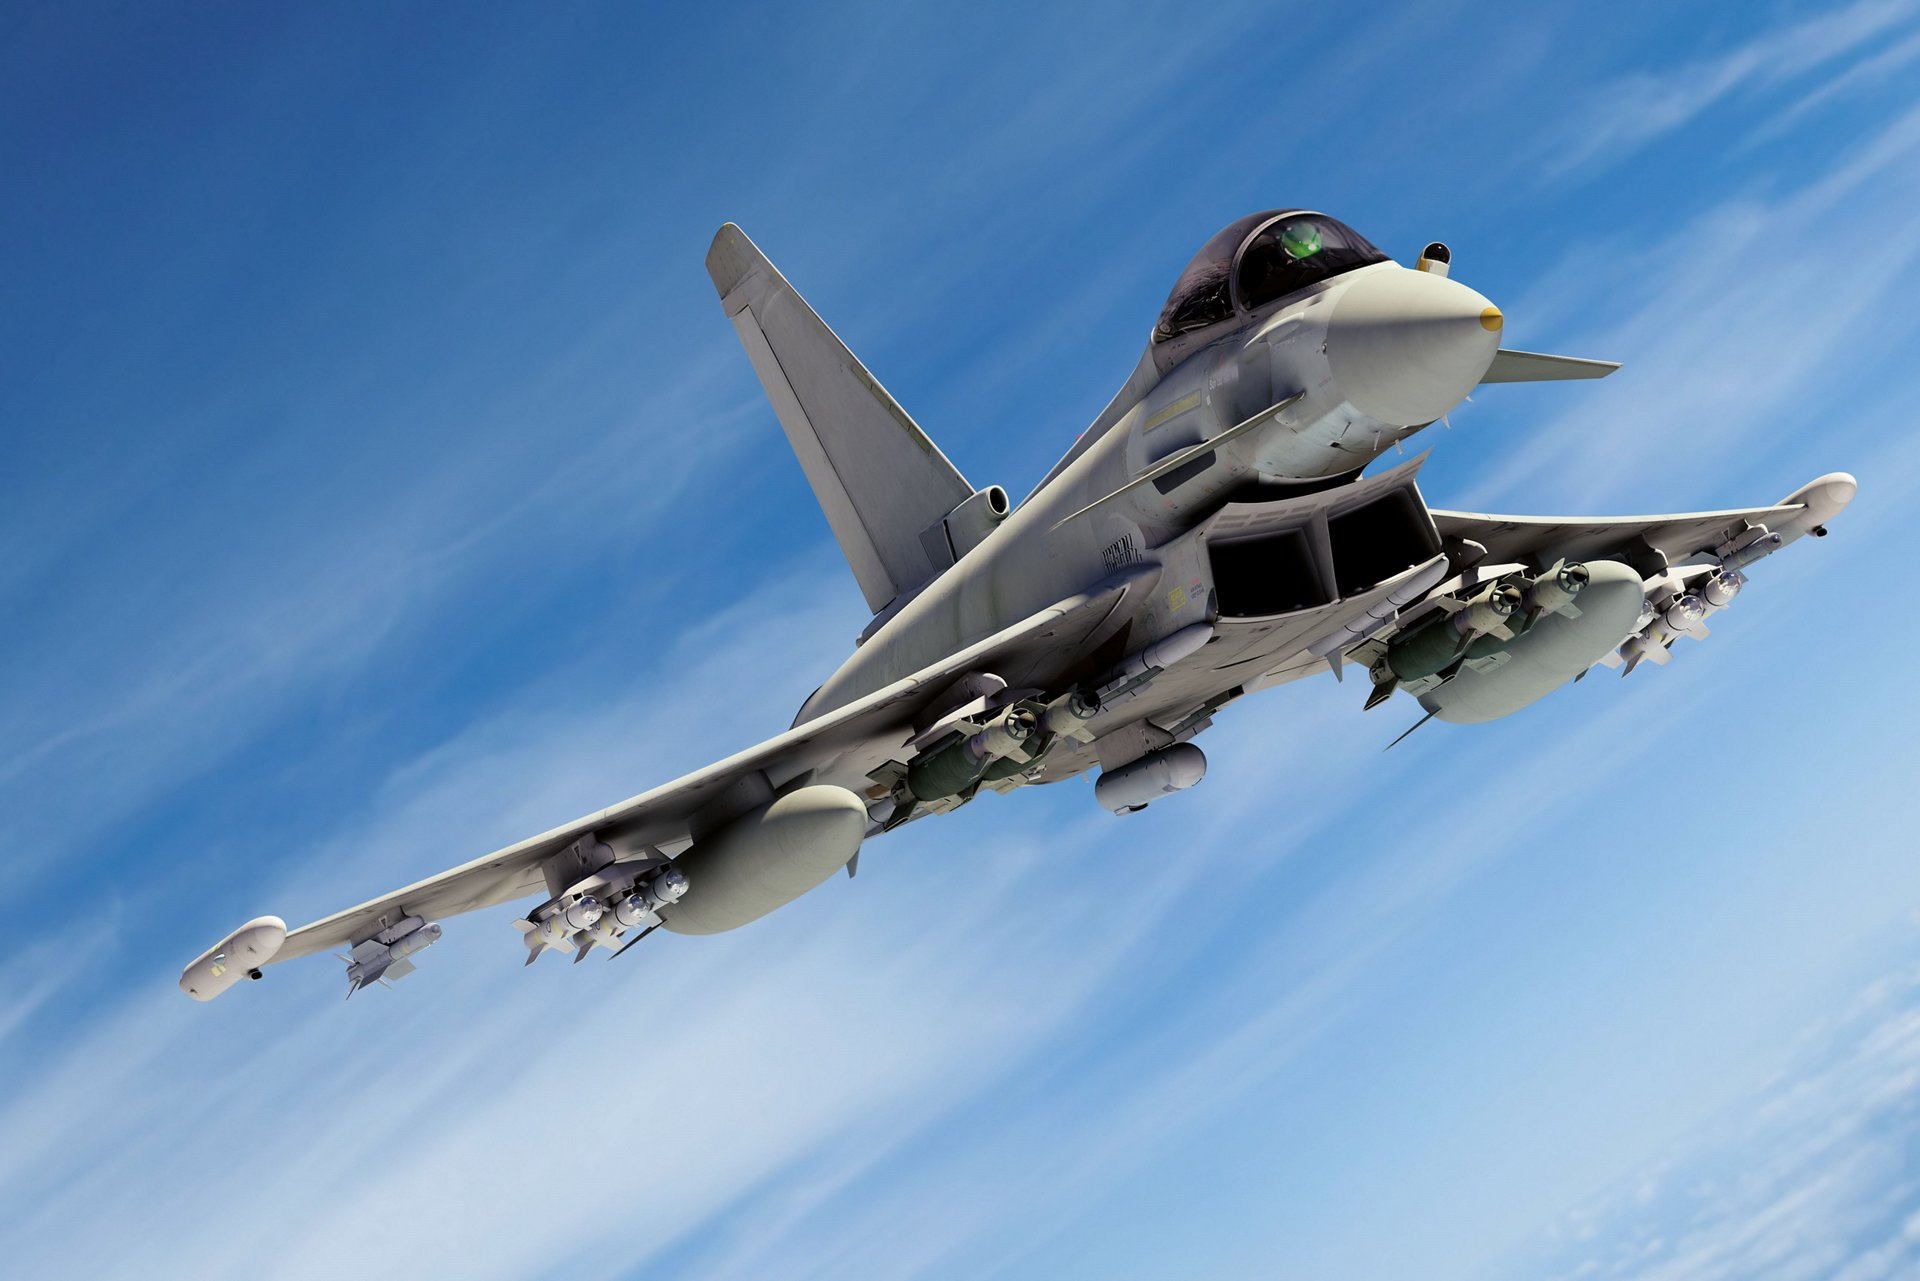 Representation of an in-flight Eurofighter Typhoon swing-role fighter aircraft.